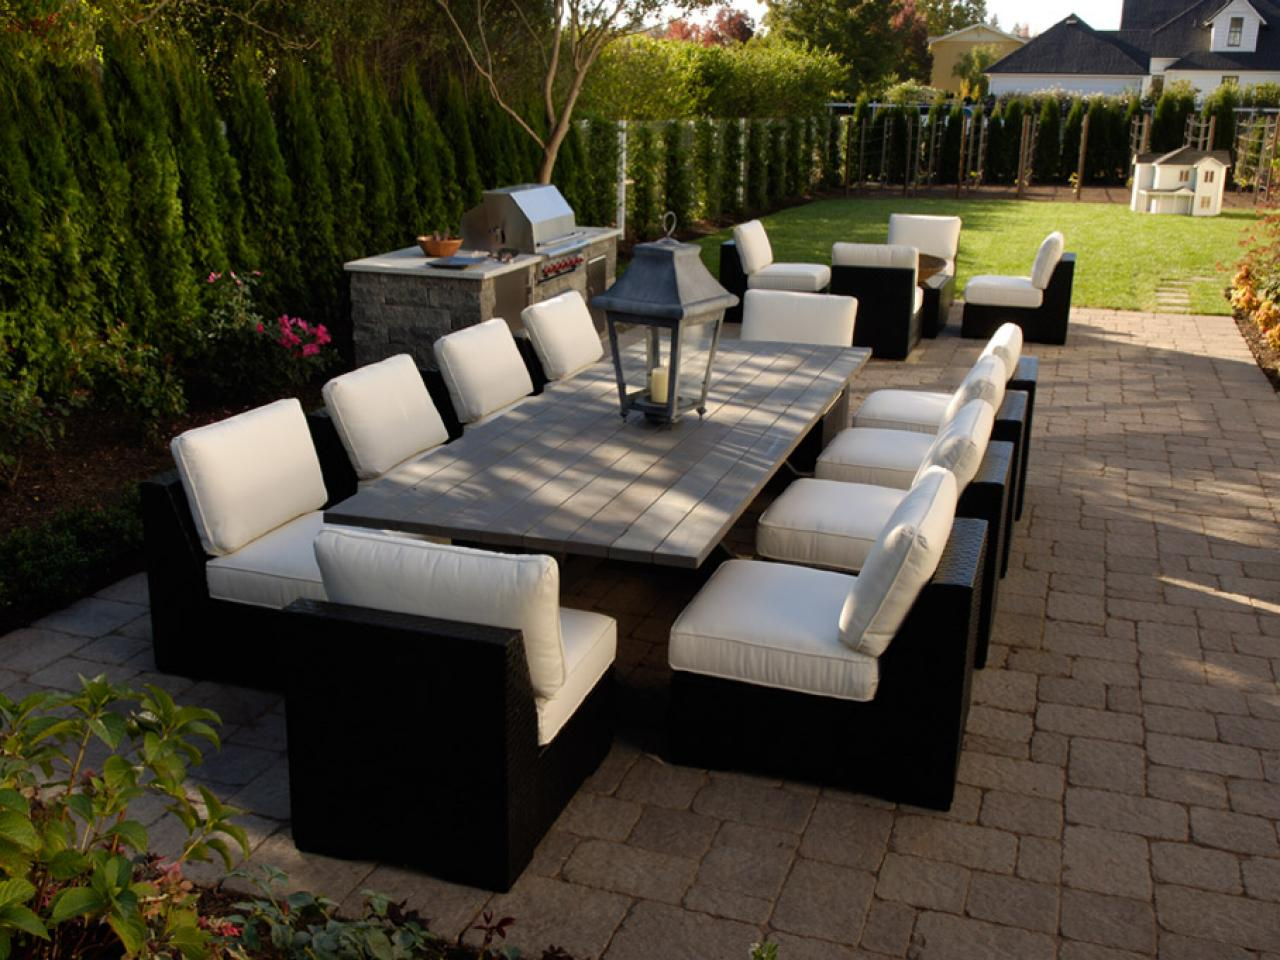 Furnishing your outdoor room hgtv for Outdoor patio furniture sets